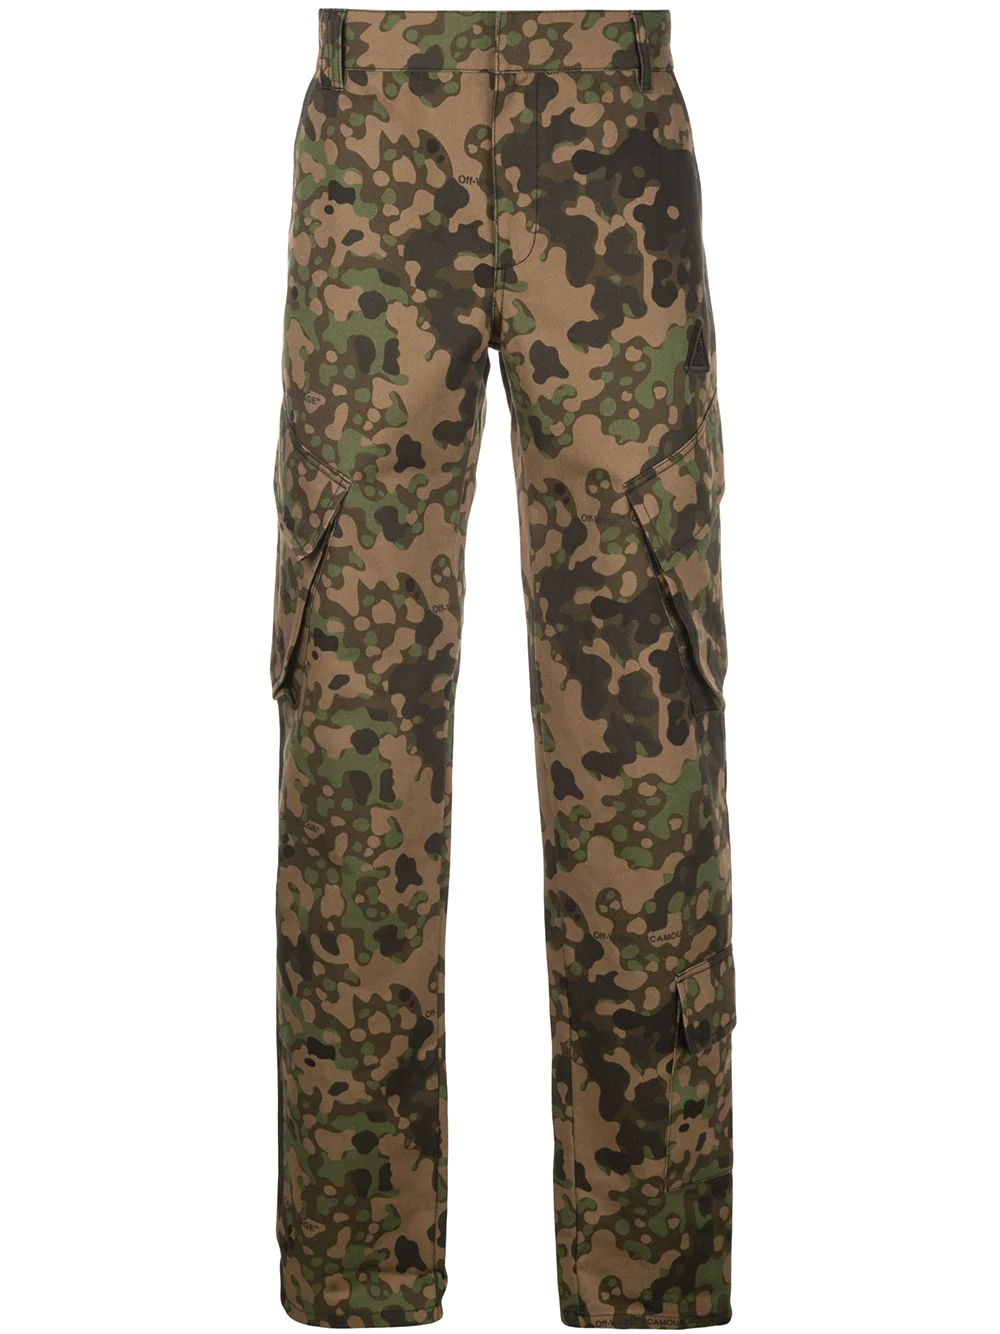 db291a4a723 Off-White Camouflage Cargo Trousers - Farfetch In Green   ModeSens